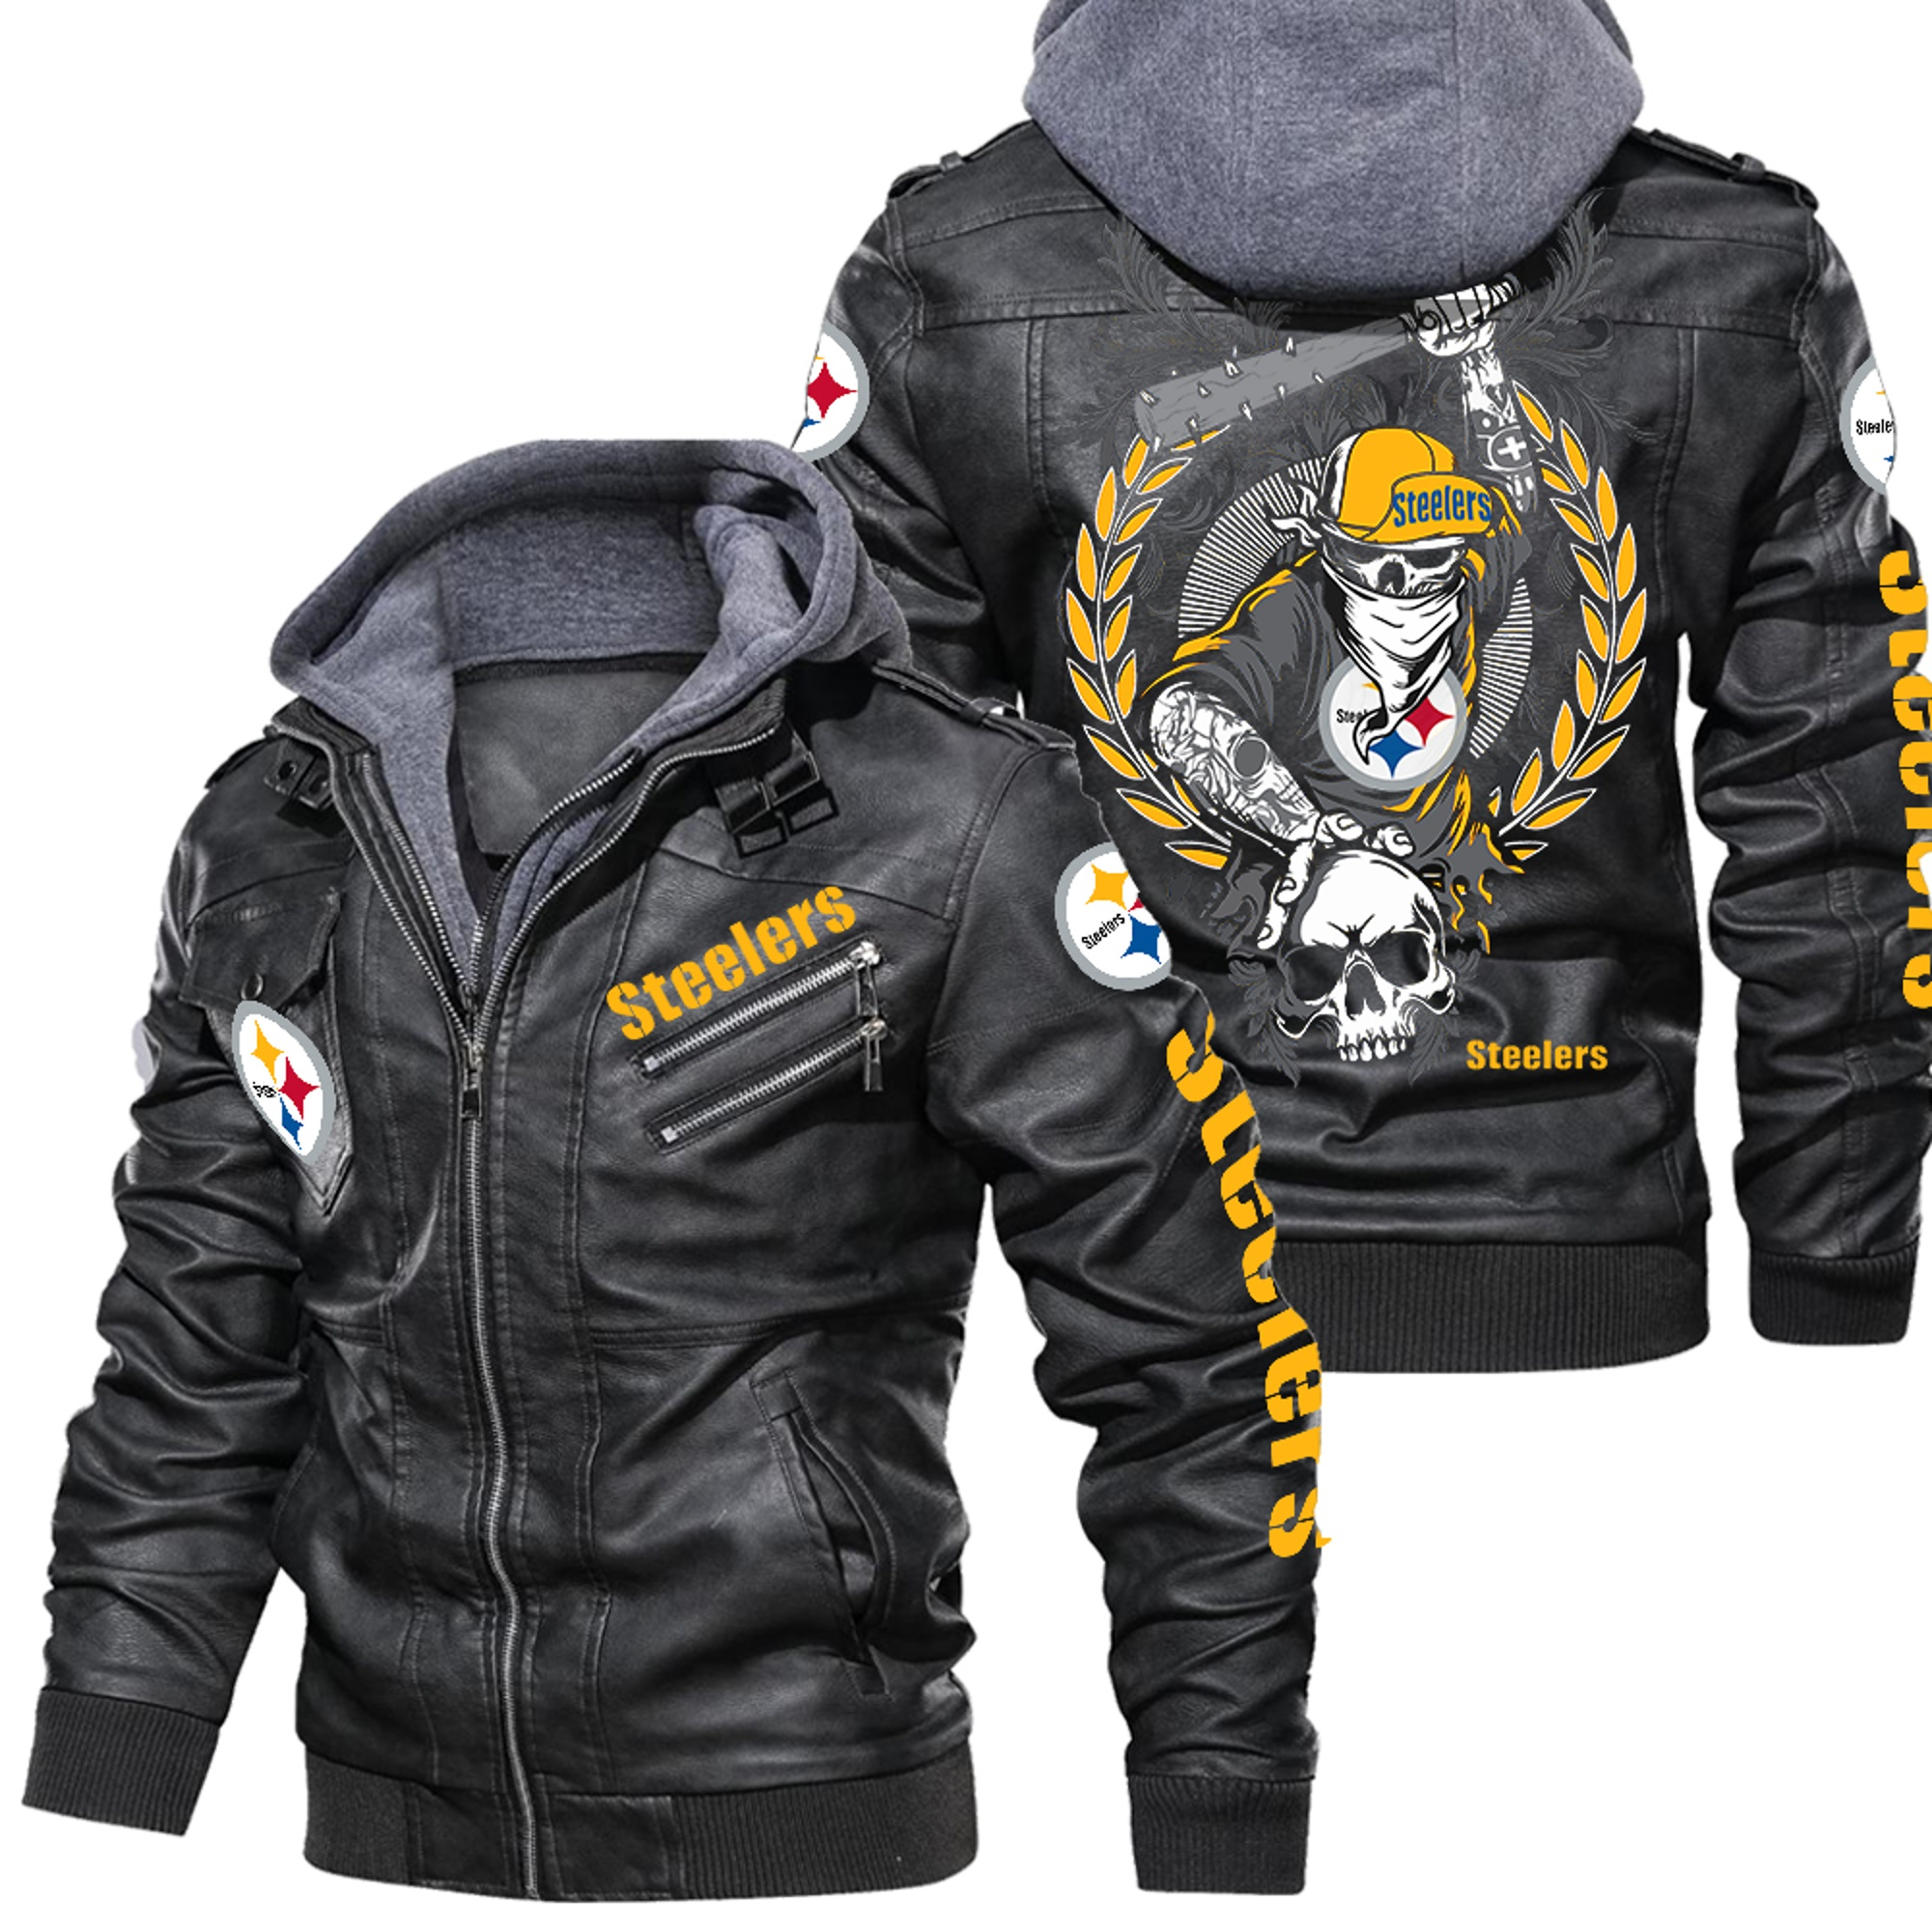 Pittsburgh Steelers Jacket – Leather Jacket,Warm Jacket, NFL Winter Outer Wear Gift